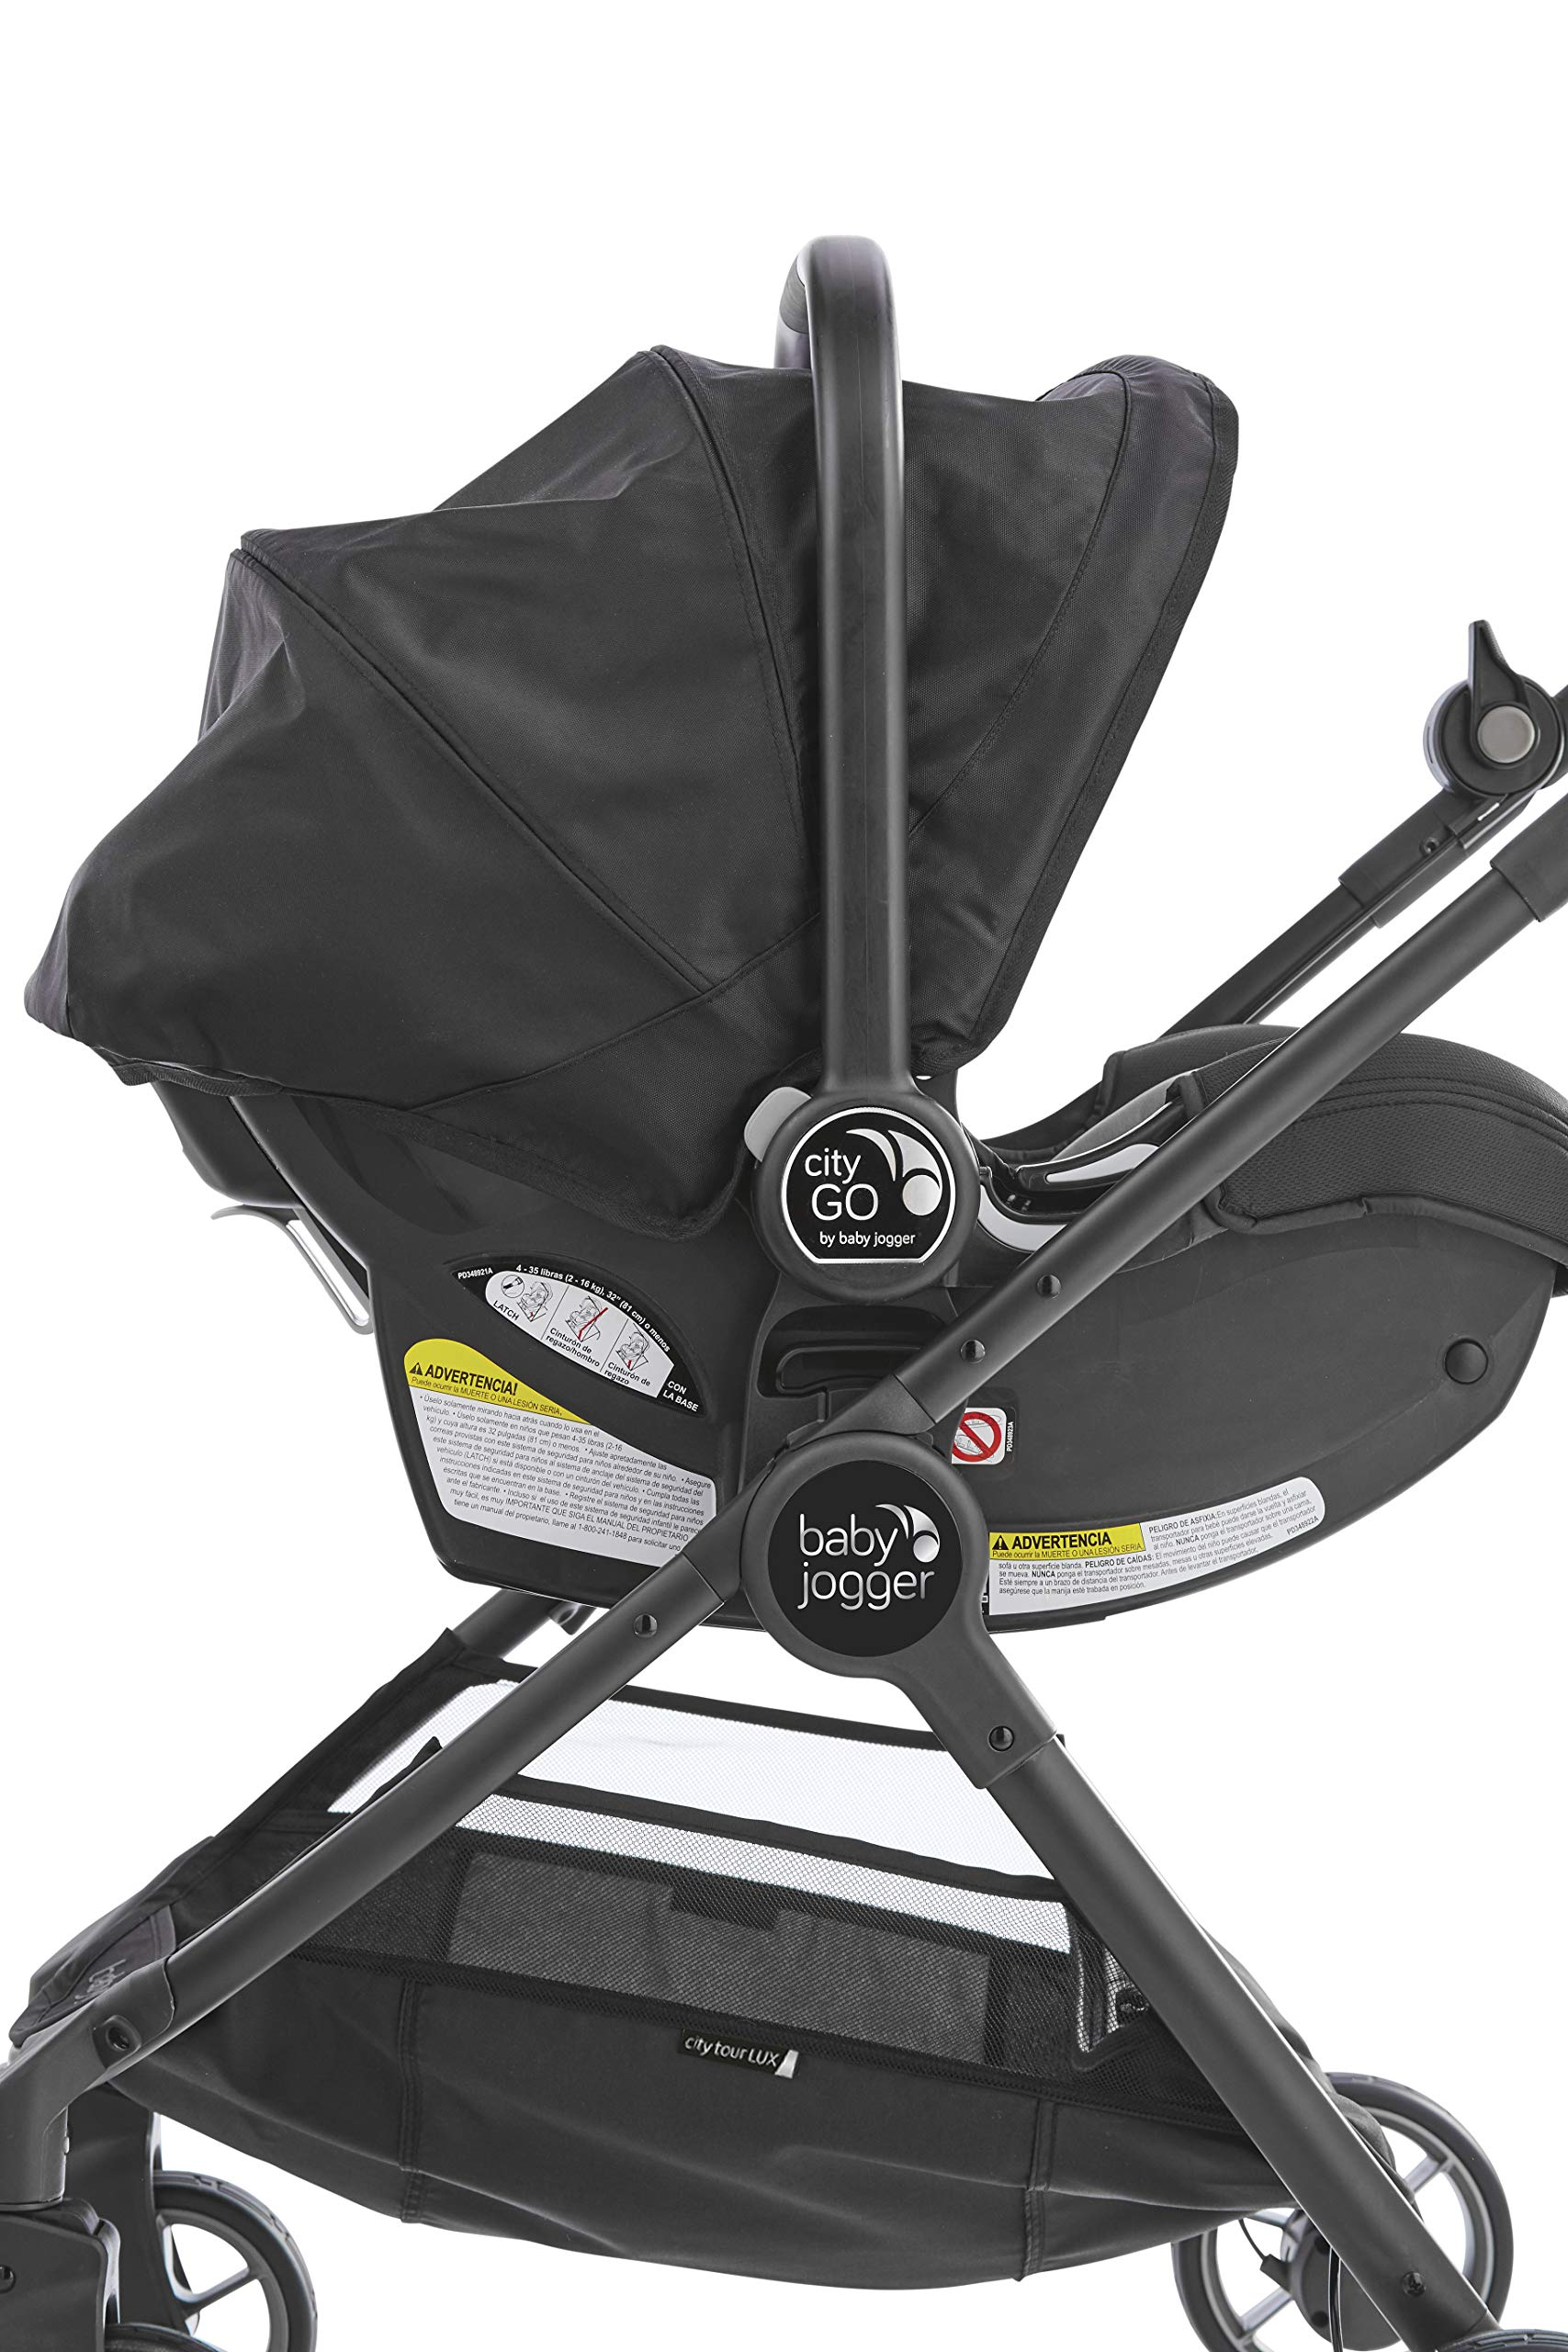 Baby Jogger City Tour LUX Car Seat Adapters City Go/Graco Baby Jogger Your baby jogger pushchair can become a travel system in a heartbeat using car seat adapters Attaching your car seat to a baby jogger stroller has never been easier Easy to fit, quick to release and easy to remove 2